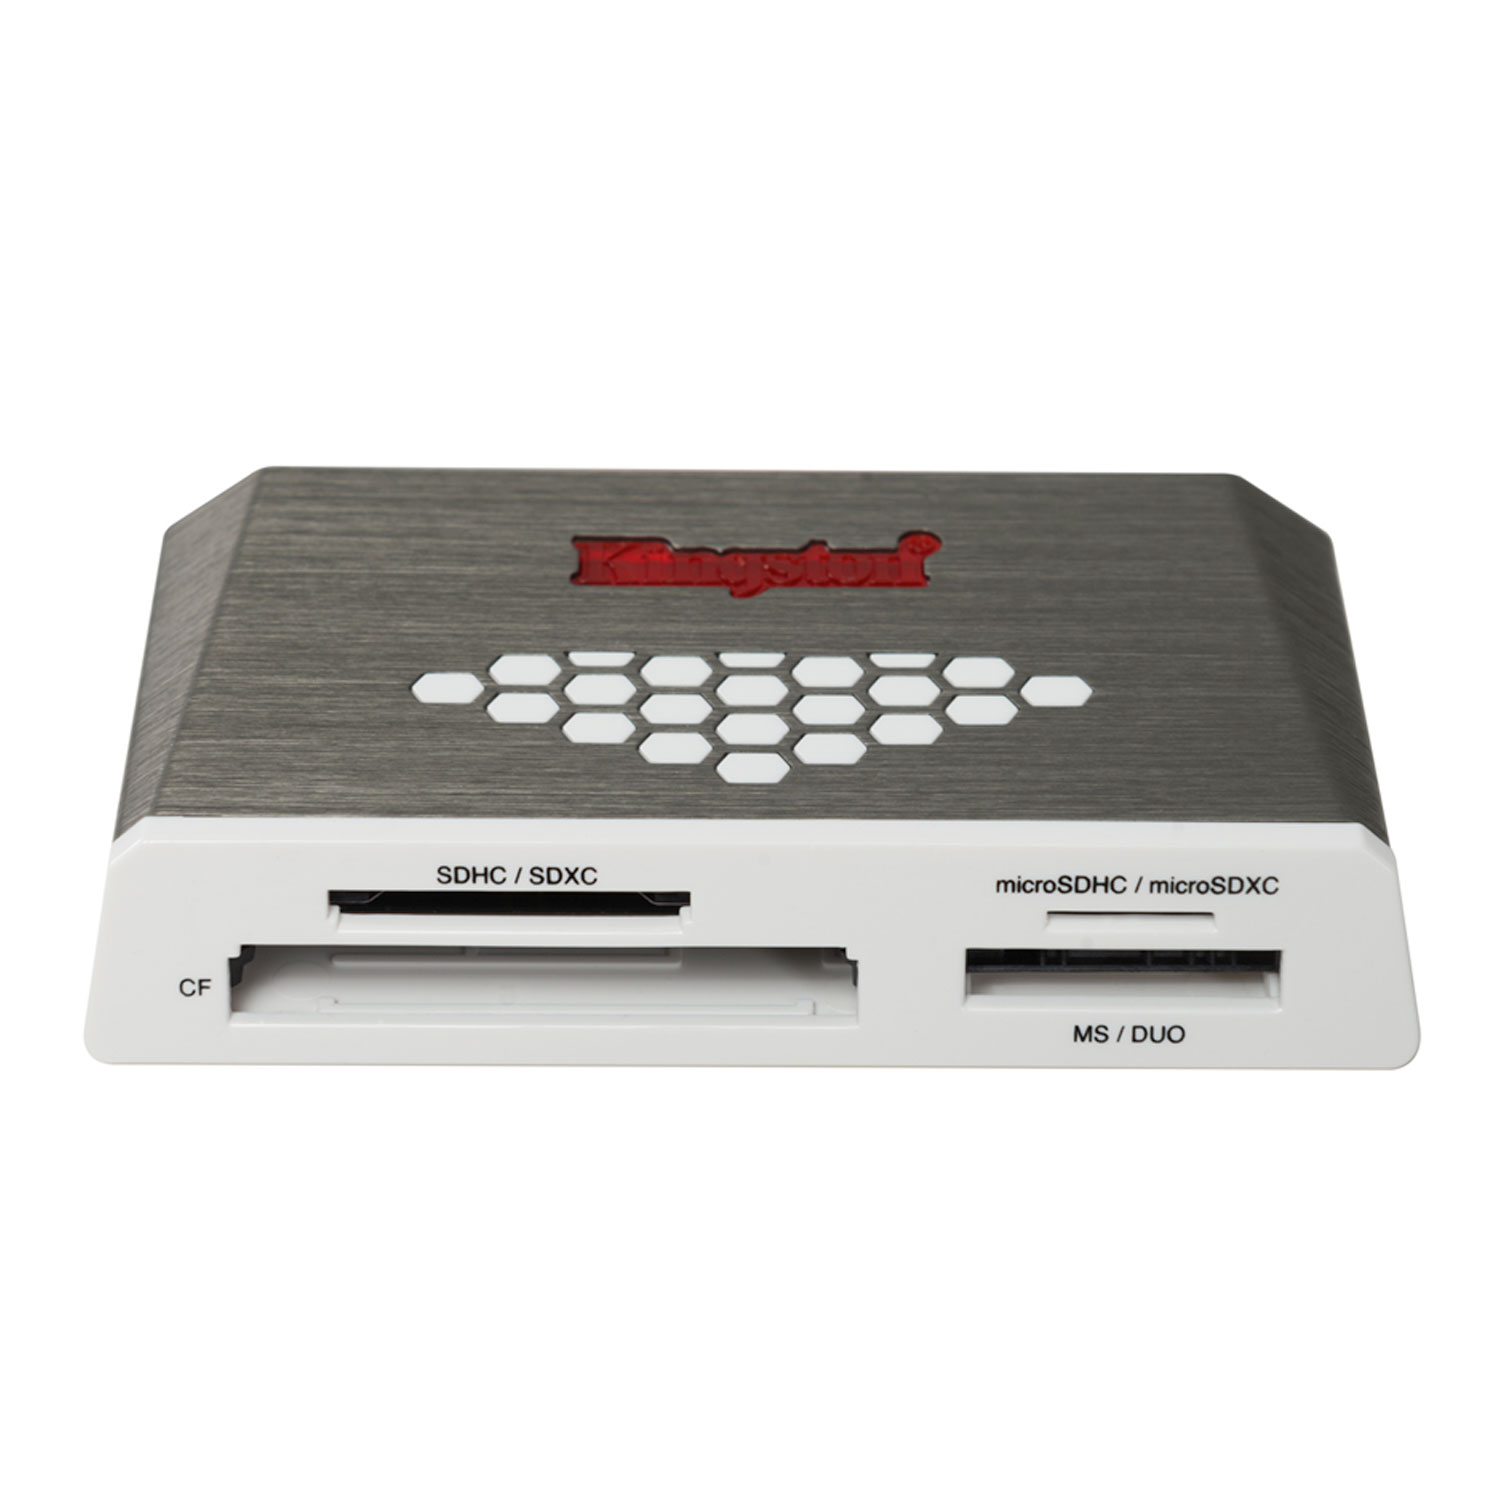 Lecteur De Carte Usb.Lecteur De Cartes Multiformats Kingston Fcr Hs4 Usb 3 0